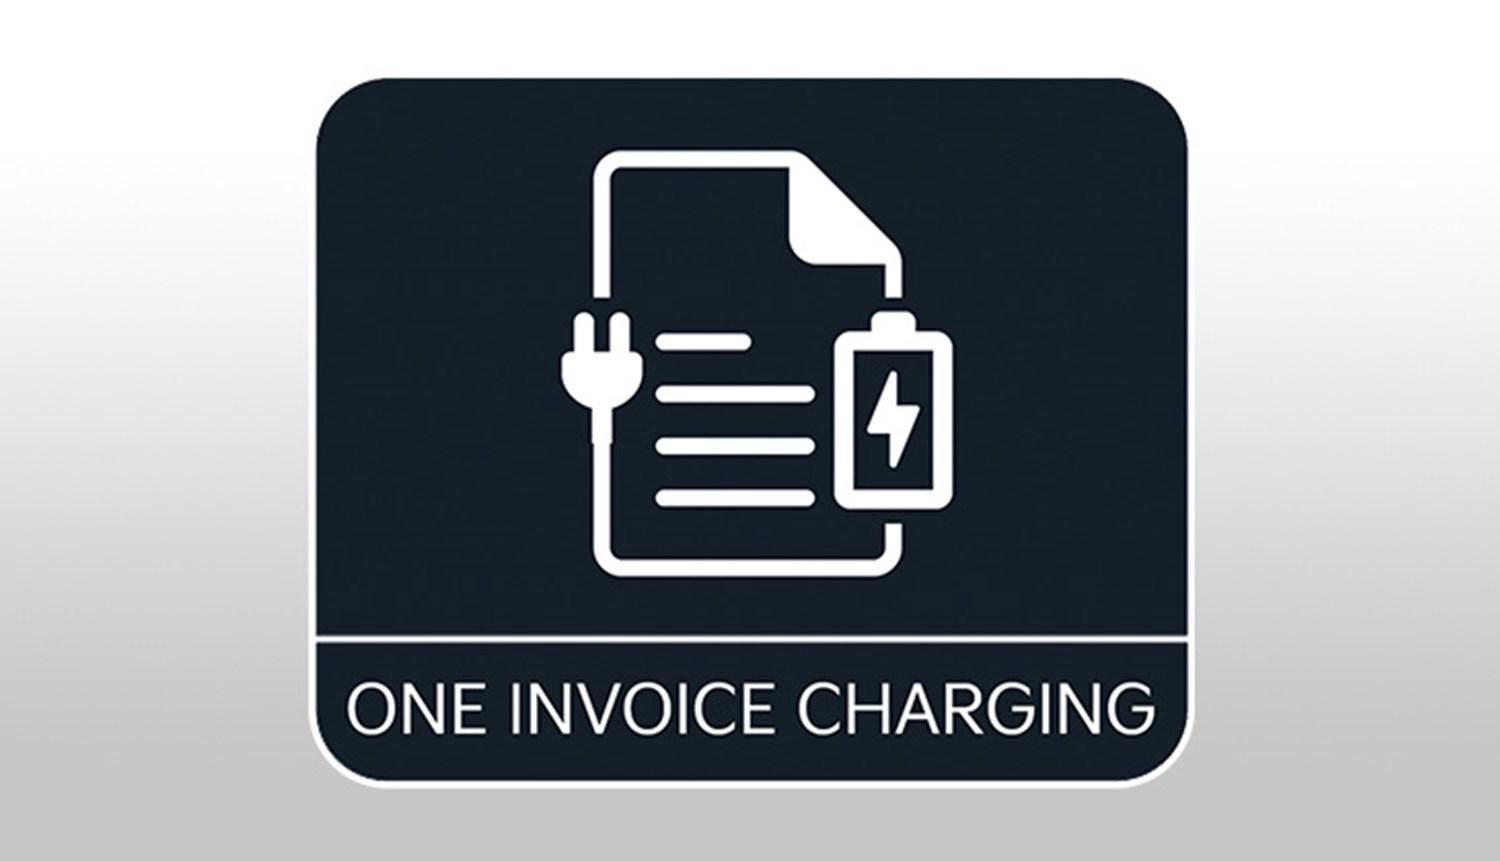 One Invoice Charging